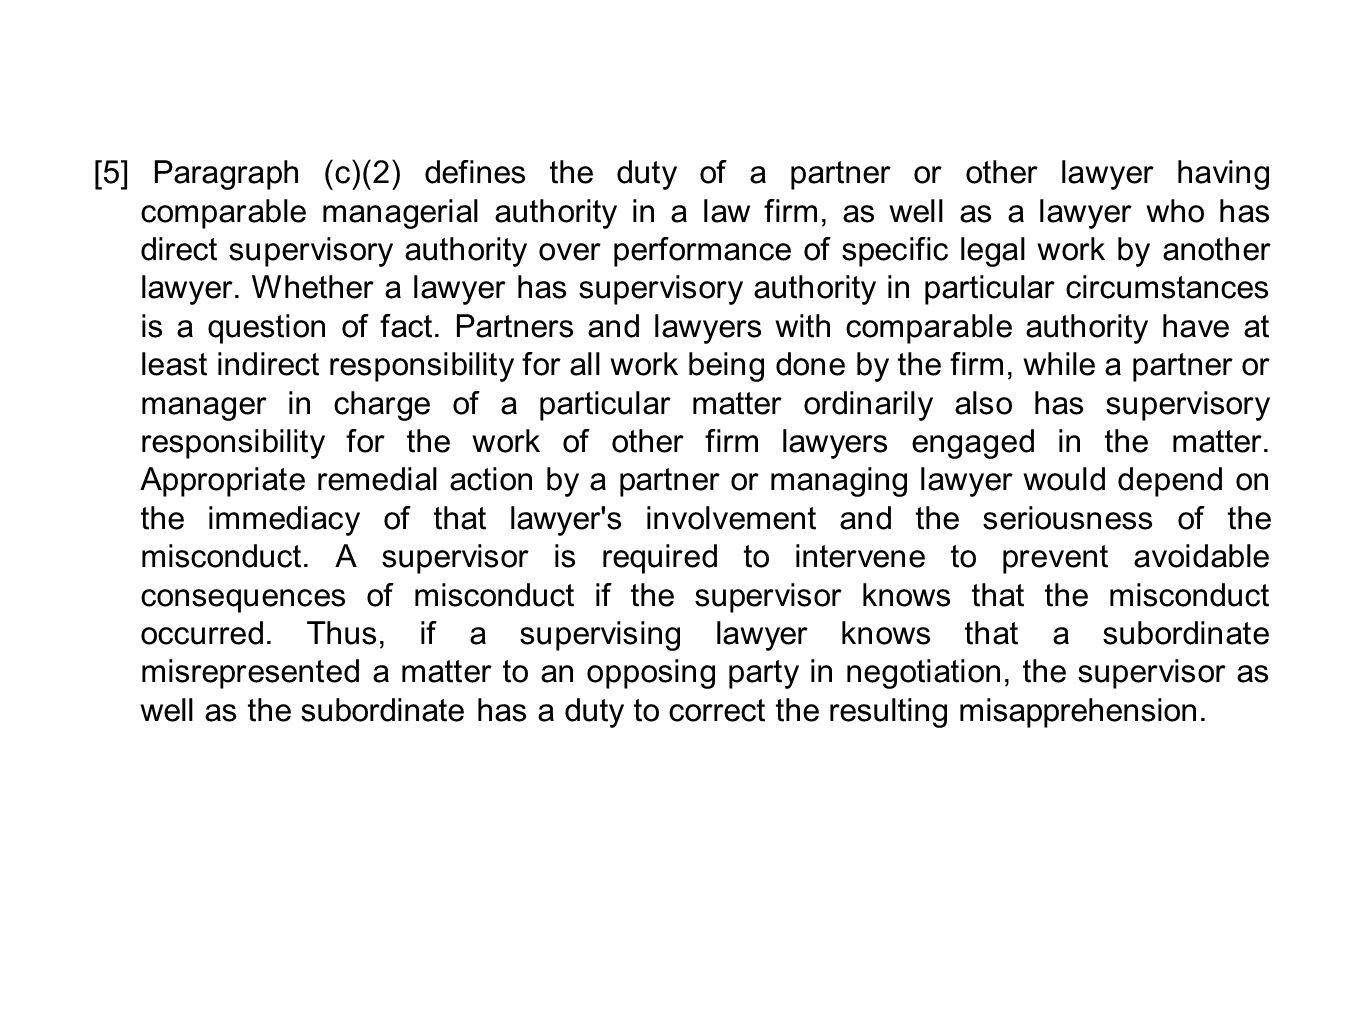 [5] Paragraph (c)(2) defines the duty of a partner or other lawyer having comparable managerial authority in a law firm, as well as a lawyer who has d